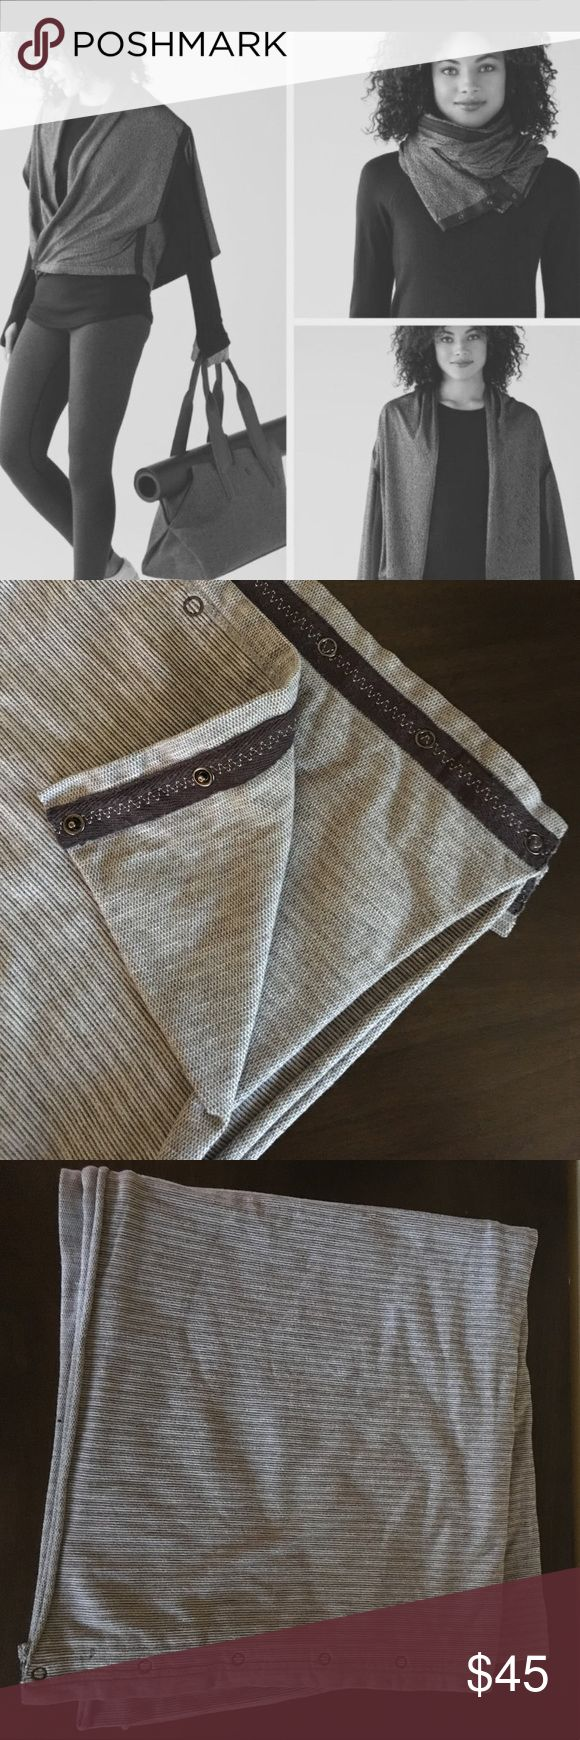 Reversible*lululemon athletica Vinyasa Scarf Perfect condition. Vintage reversible grey patterns. Smoke-free and pet-free home!  *Bundle with other items for a discount! lululemon athletica Accessories Scarves & Wraps